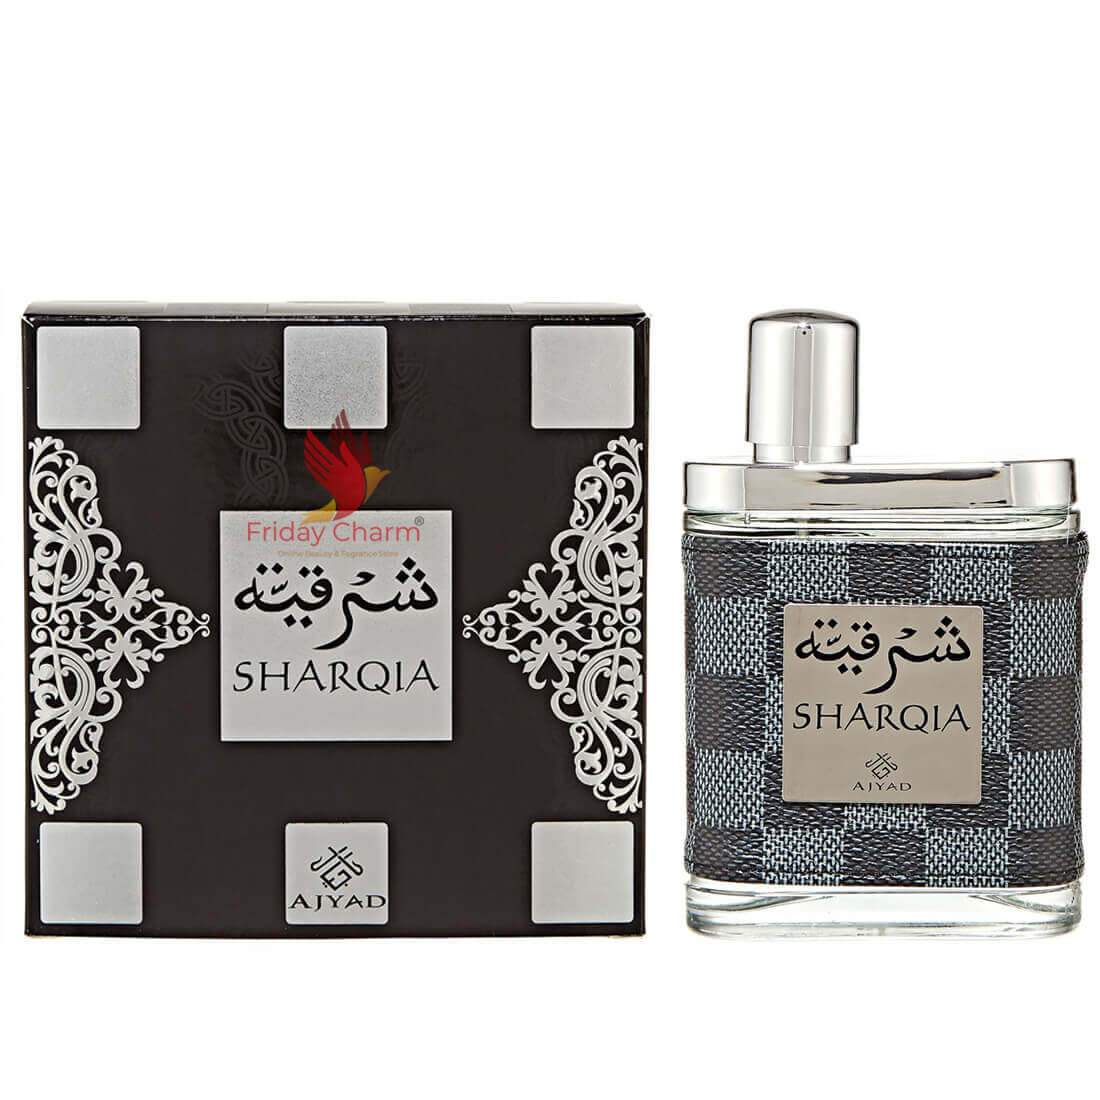 Ajyad Sharqia Spray - 100ml